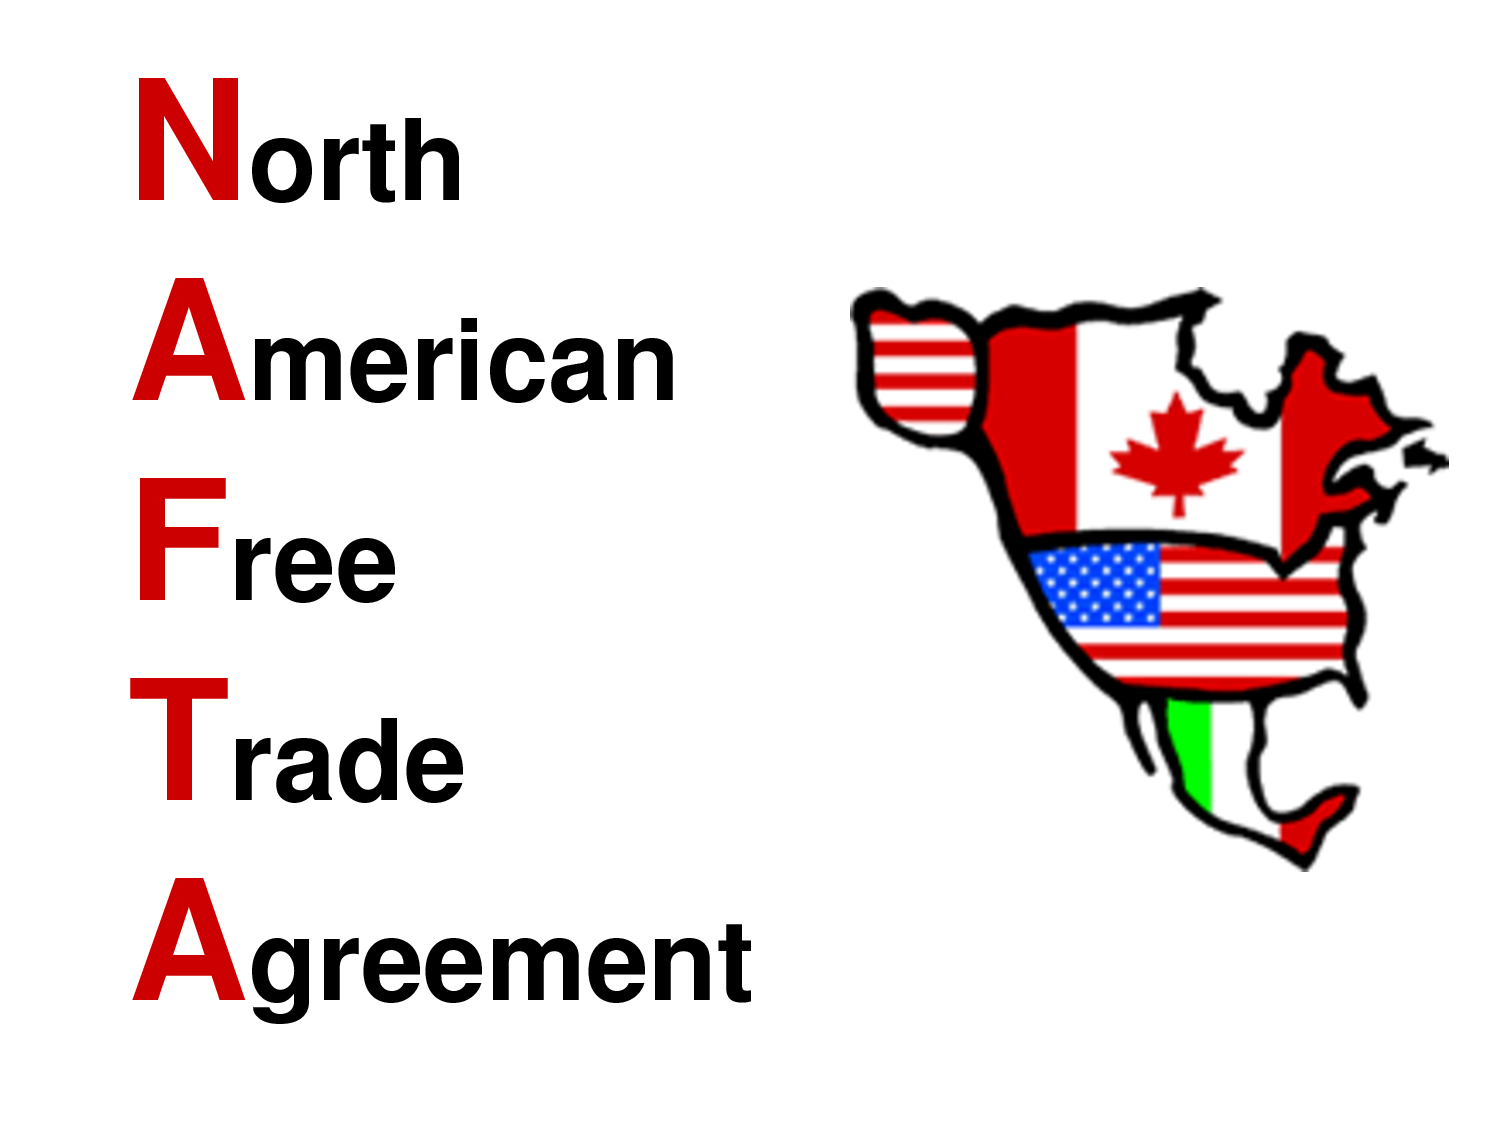 free trade in america Free trade, however, is good for america, and for a very simple reason: it allows american workers to specialize in goods and services that they produce more efficiently than the rest of the world and then to exchange them for goods and services that other countries produce at higher quality and lower cost.